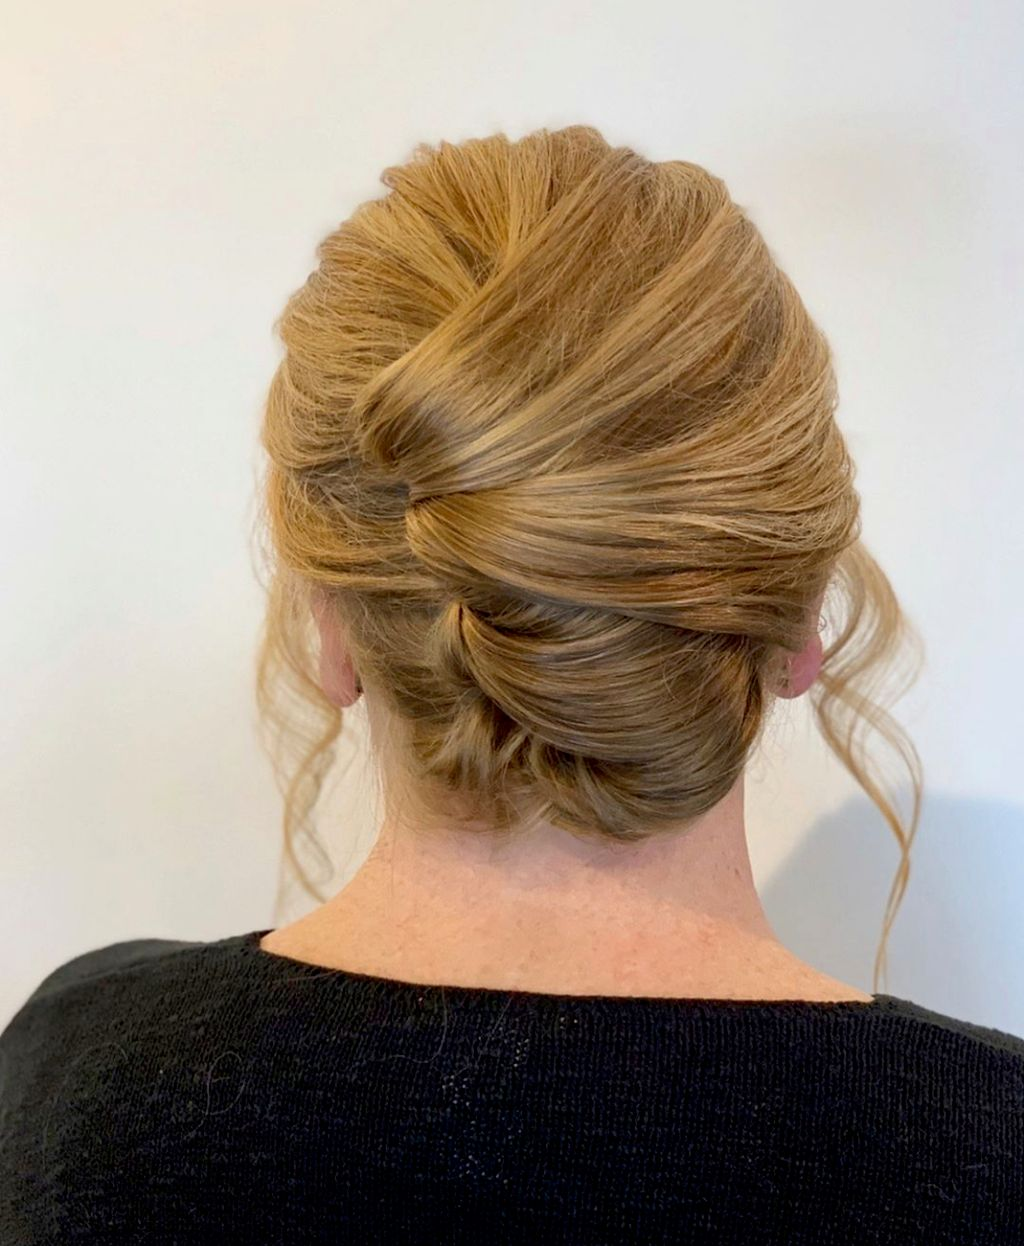 Engagement Party Updo